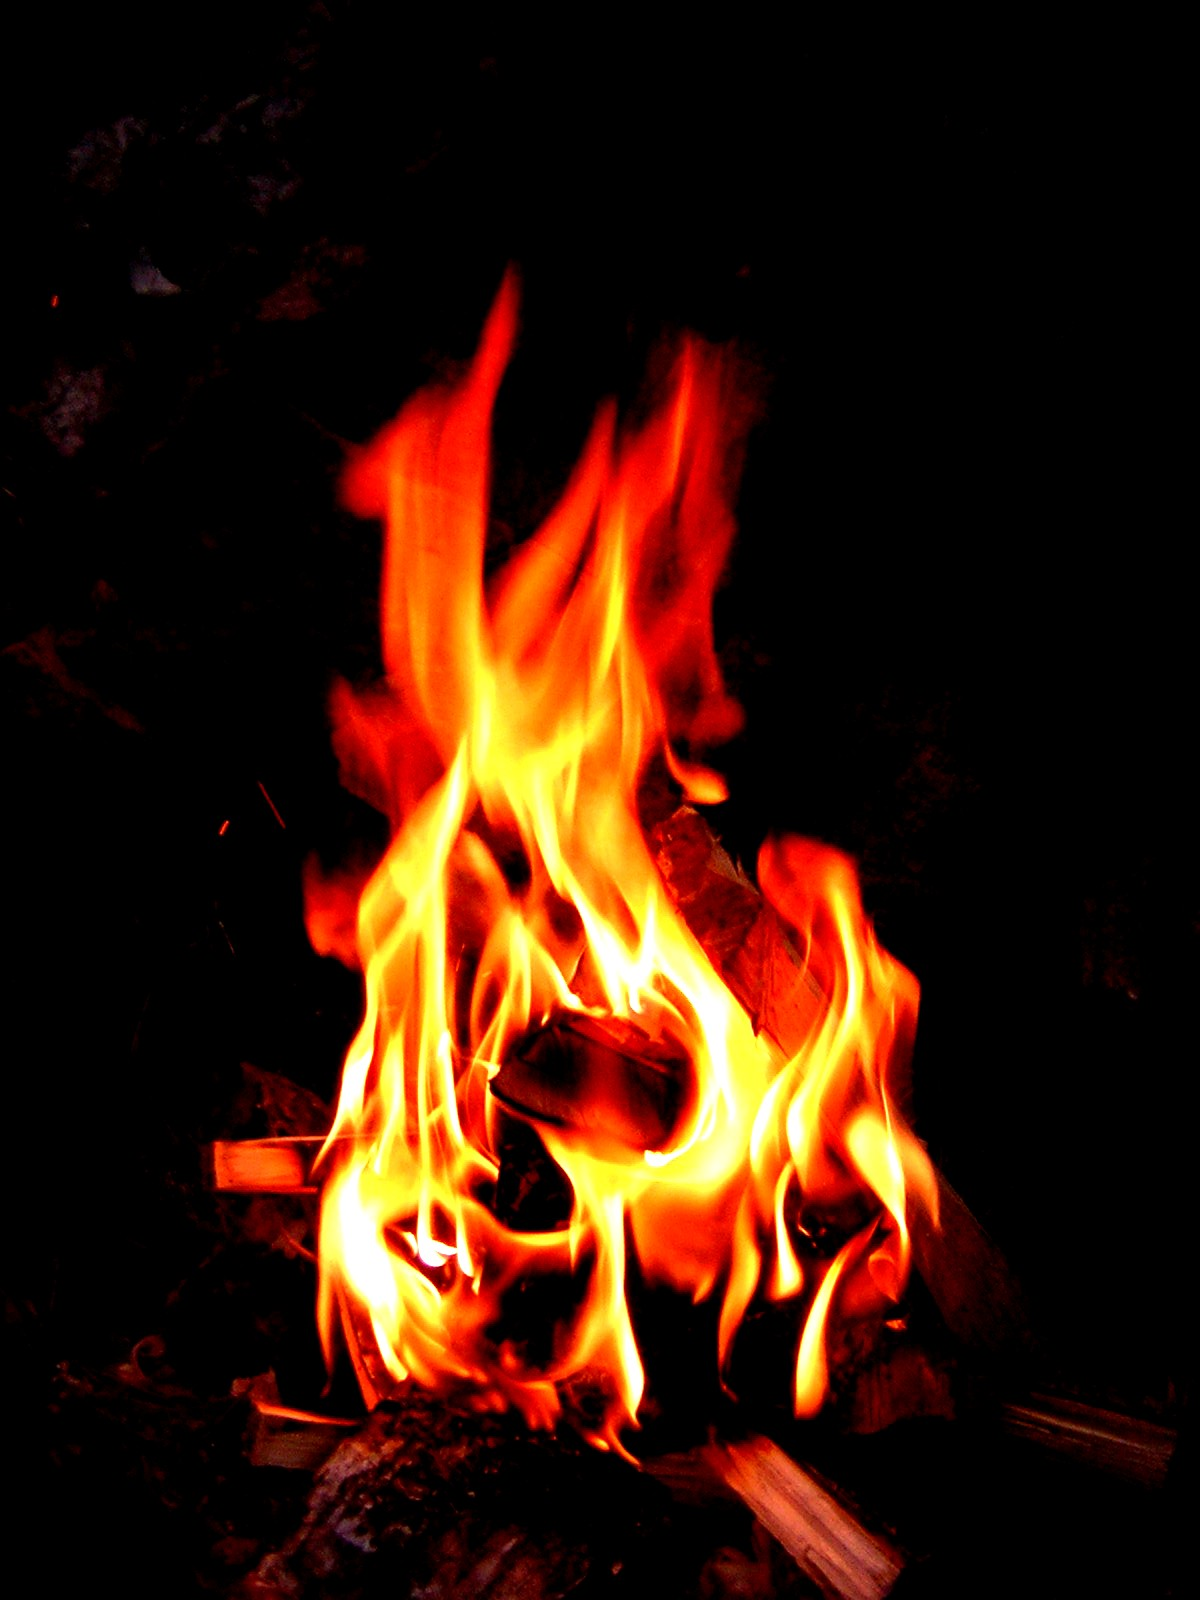 combustion wikipedia